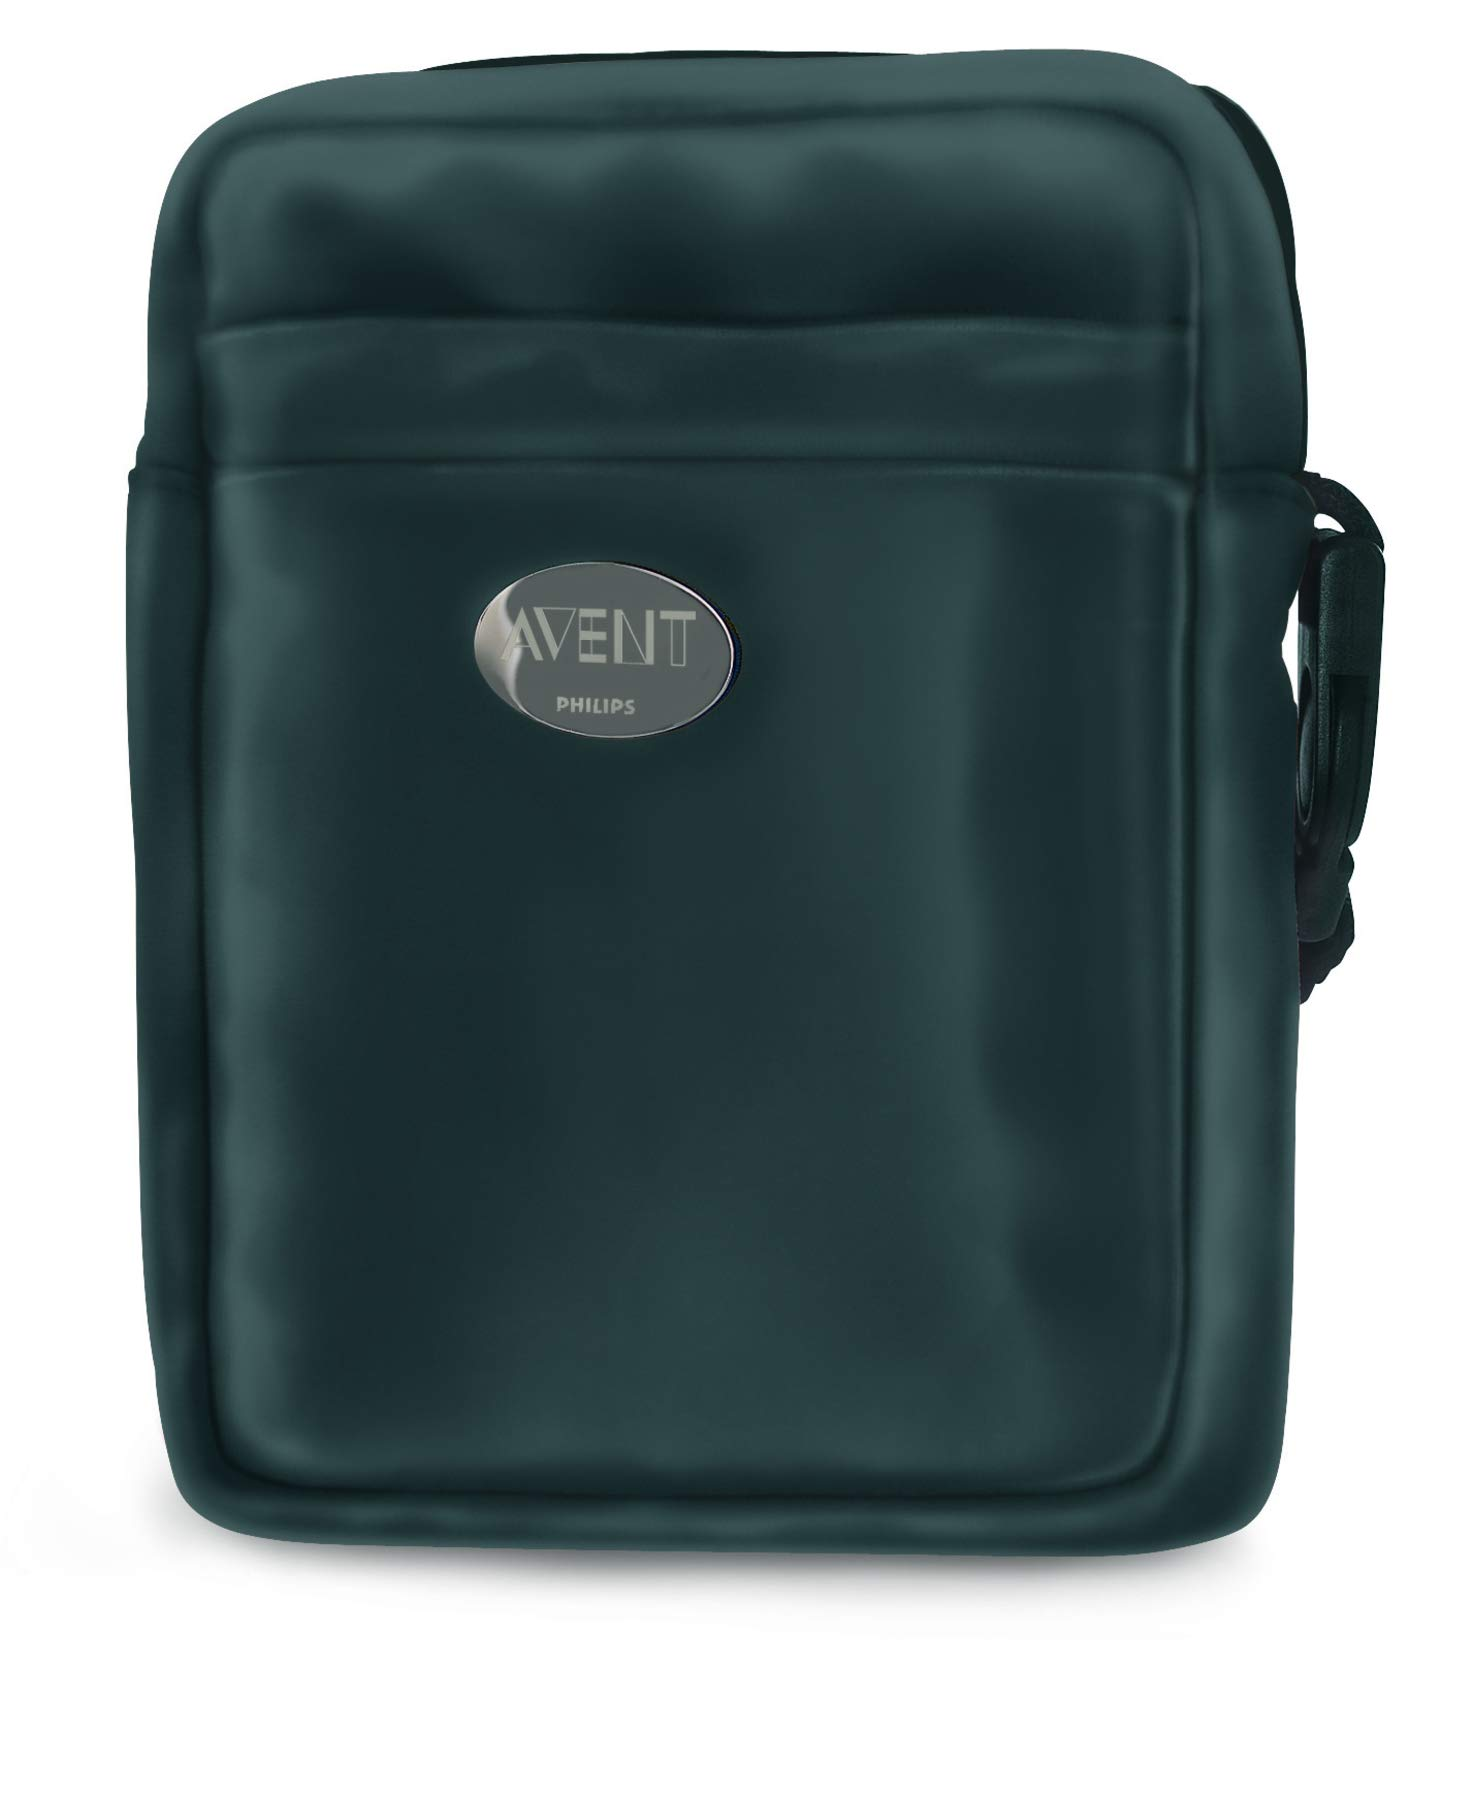 Thermabag Thermal Bag Black - Philips Avent